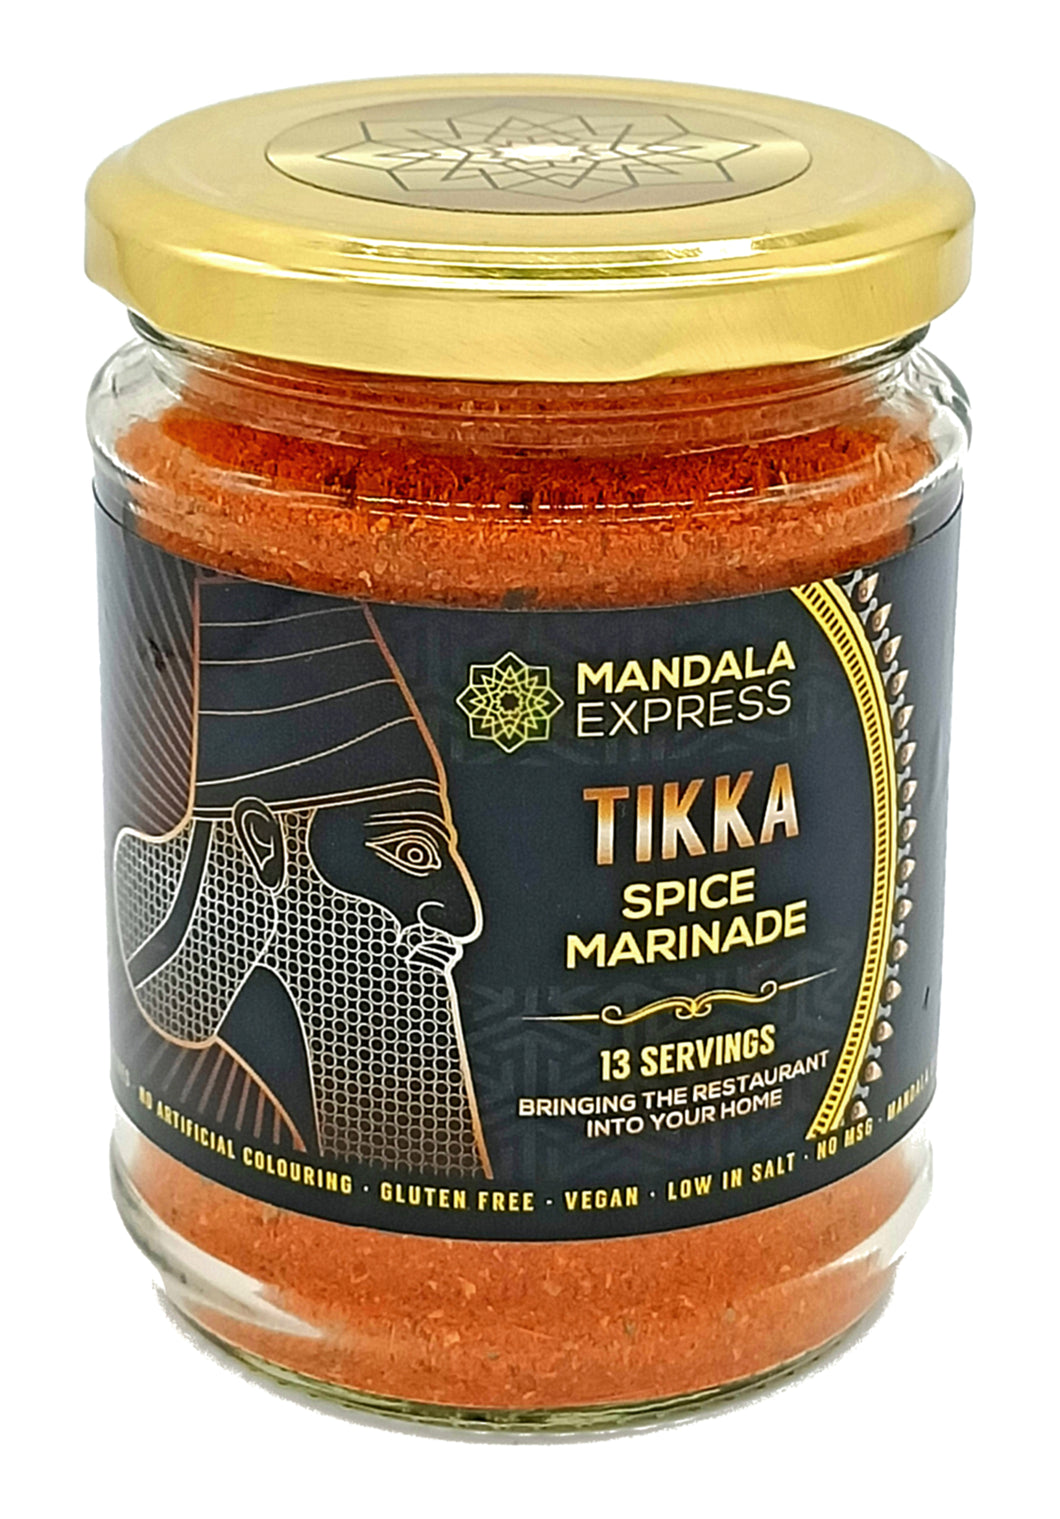 Tikka Spice Marinade (13 Servings)